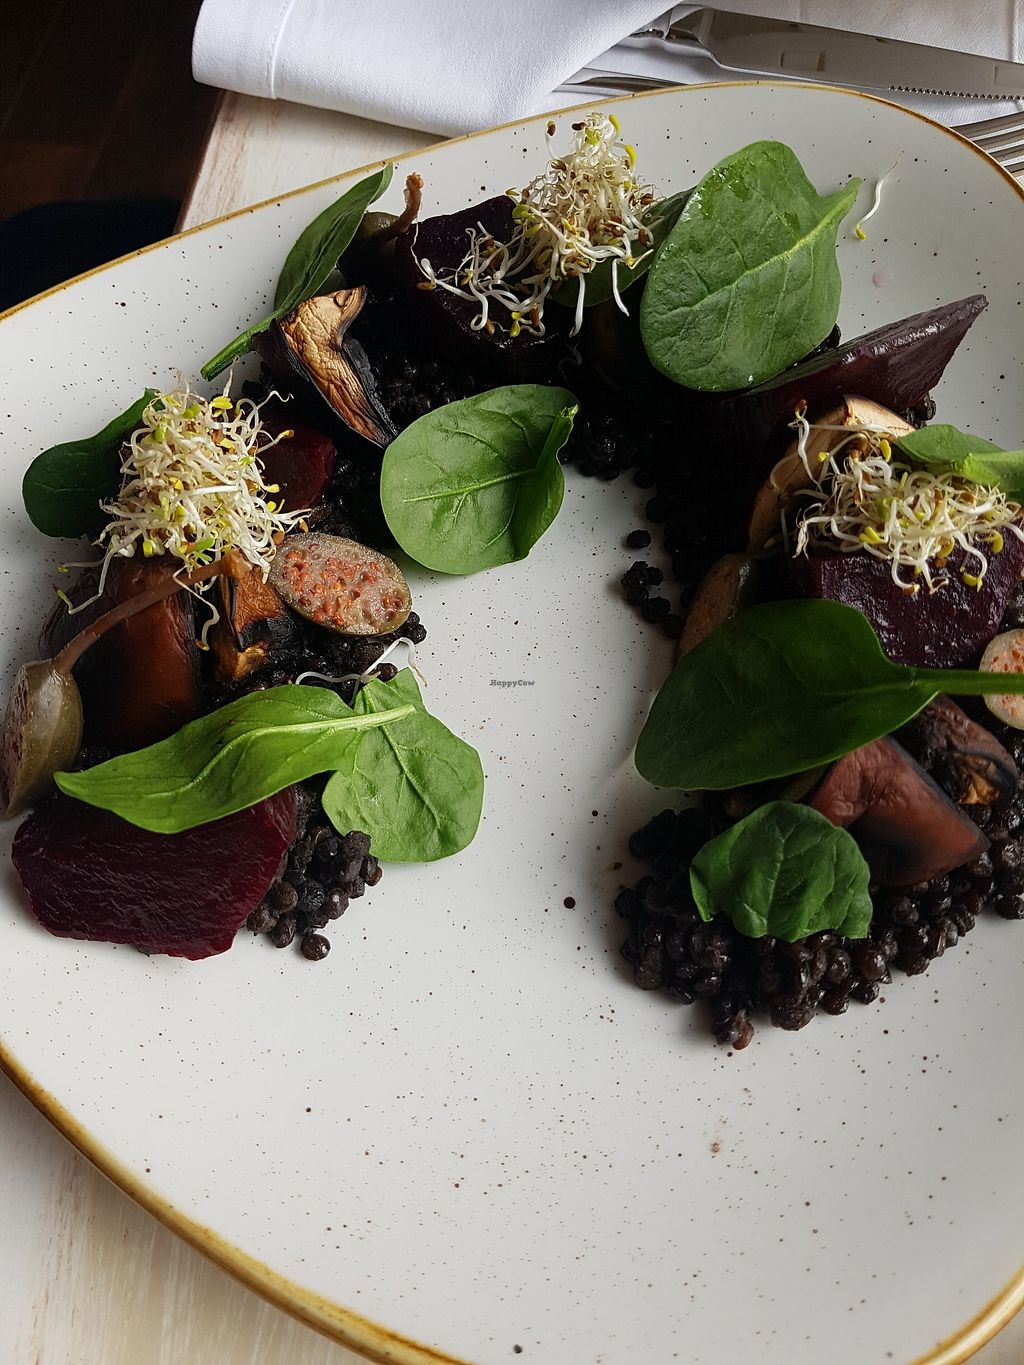 """Photo of Glow  by <a href=""""/members/profile/estefinparis"""">estefinparis</a> <br/>Portobello mushroom with black lentil ragout and roasted beetroot <br/> March 30, 2018  - <a href='/contact/abuse/image/107923/378312'>Report</a>"""